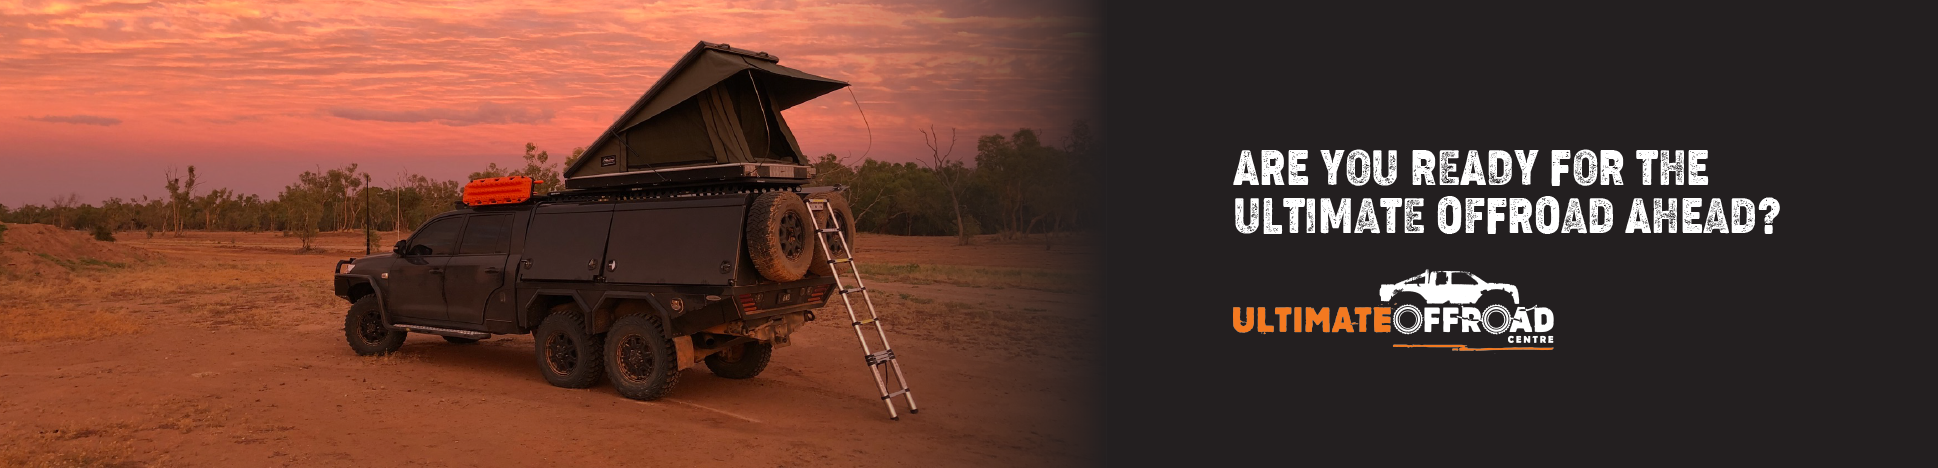 Ultimate Offroad banner